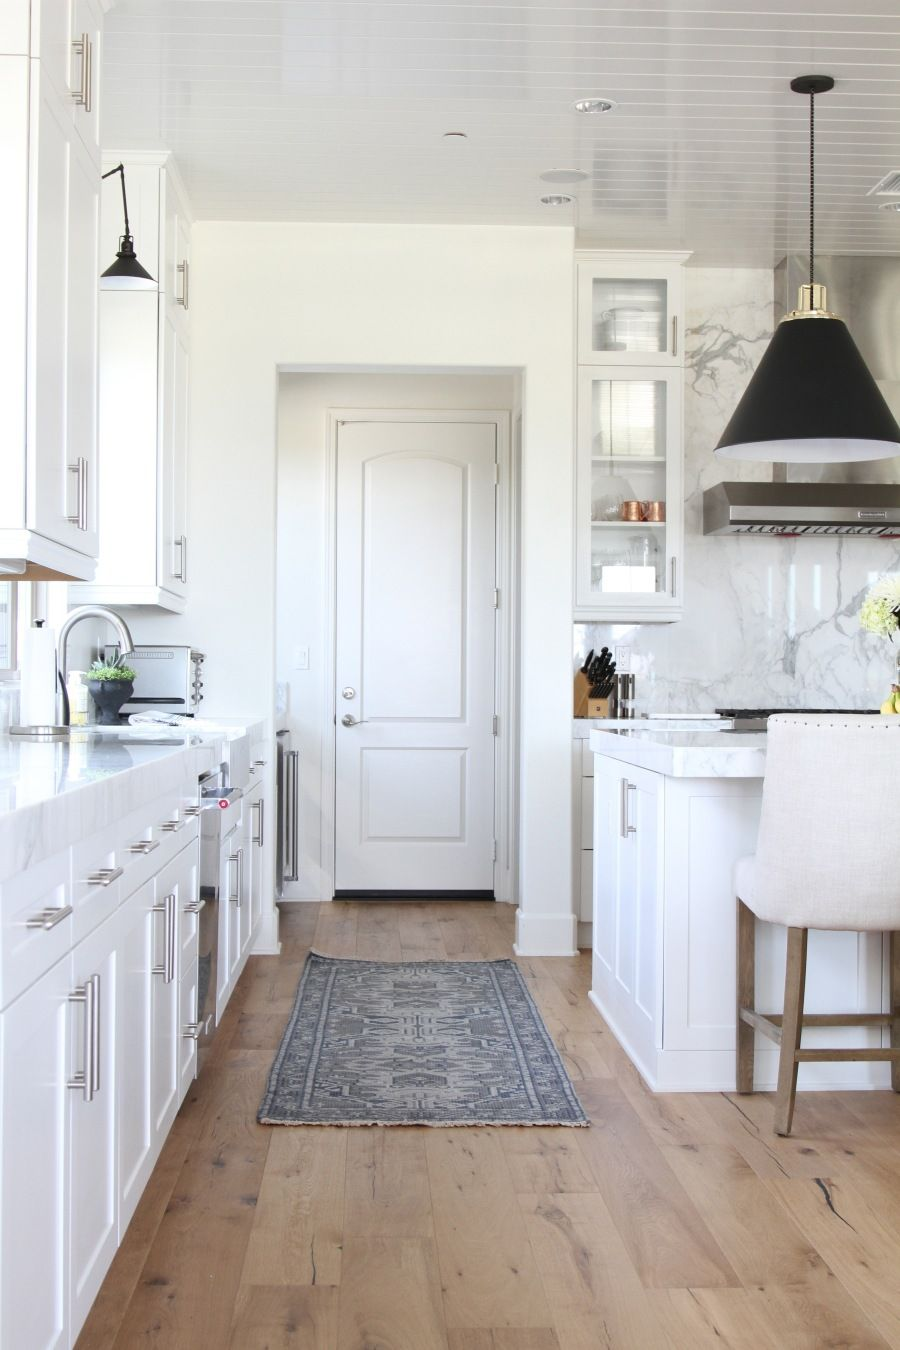 Residential Interior Project Has Modern Yet Vintage Take: You'll Want To Move Into This Interior Design Star's